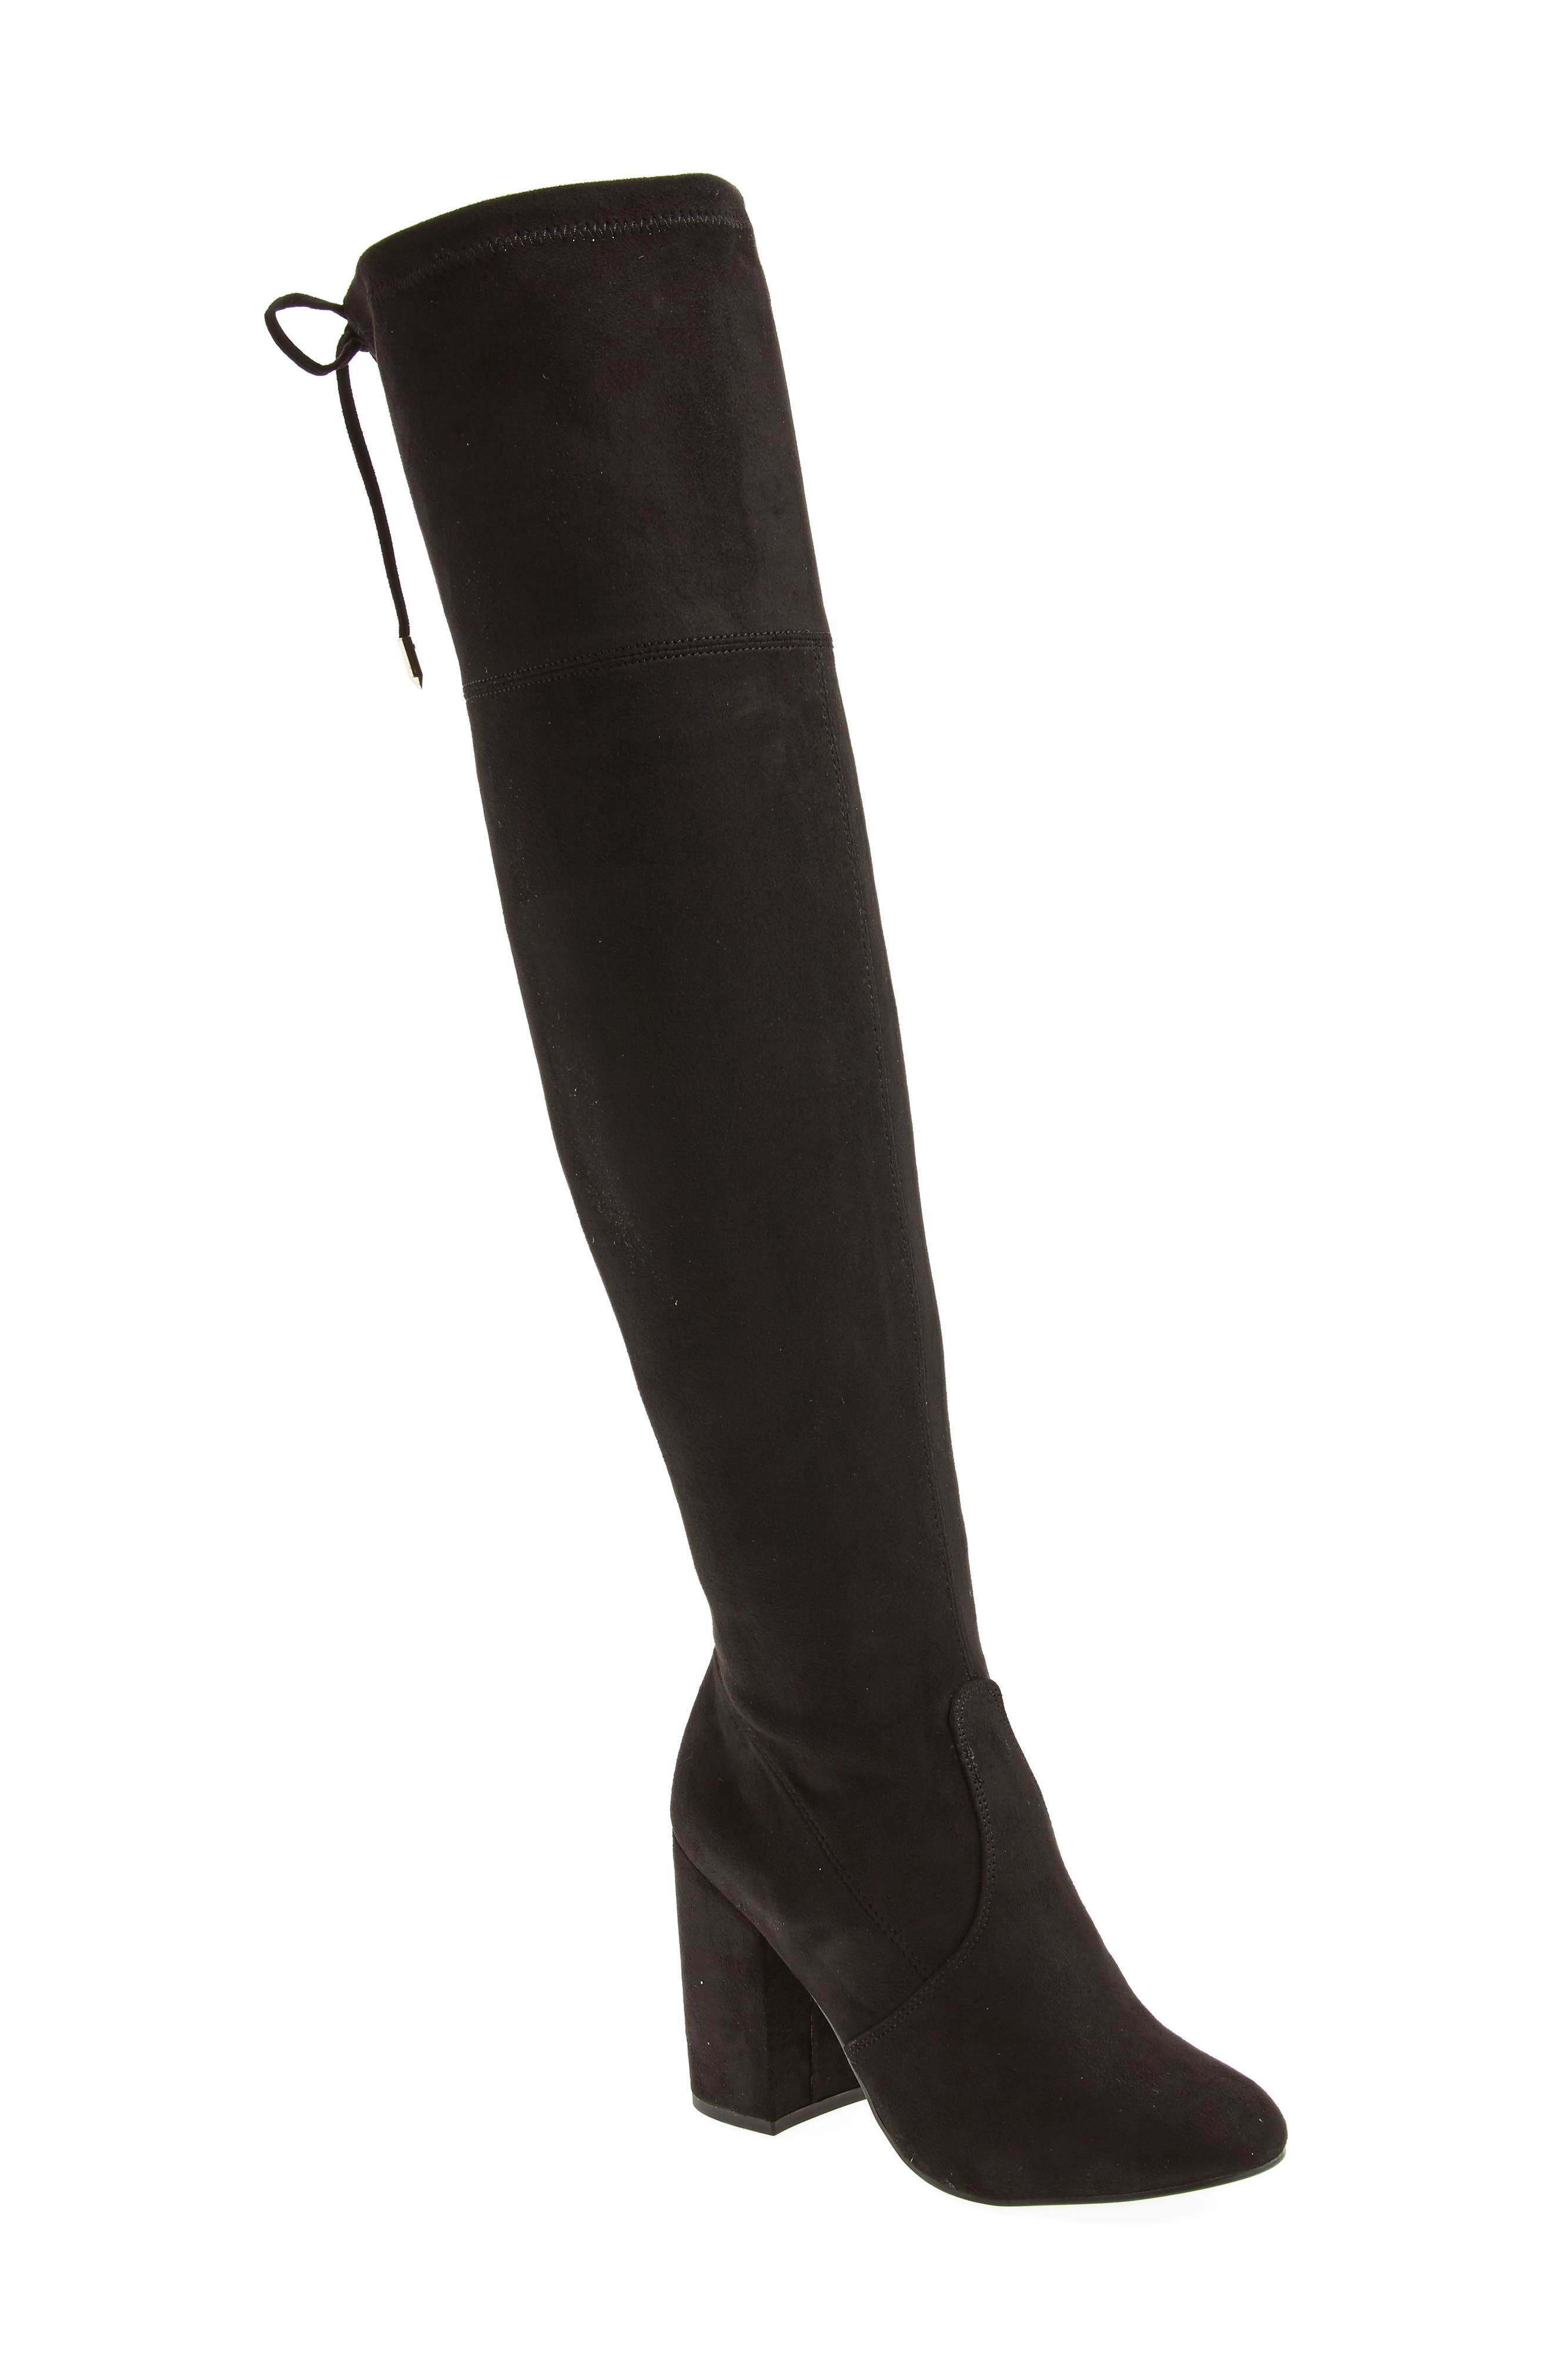 Niela Stretchy Over the Knee Boot,                             Main thumbnail 1, color,                             001